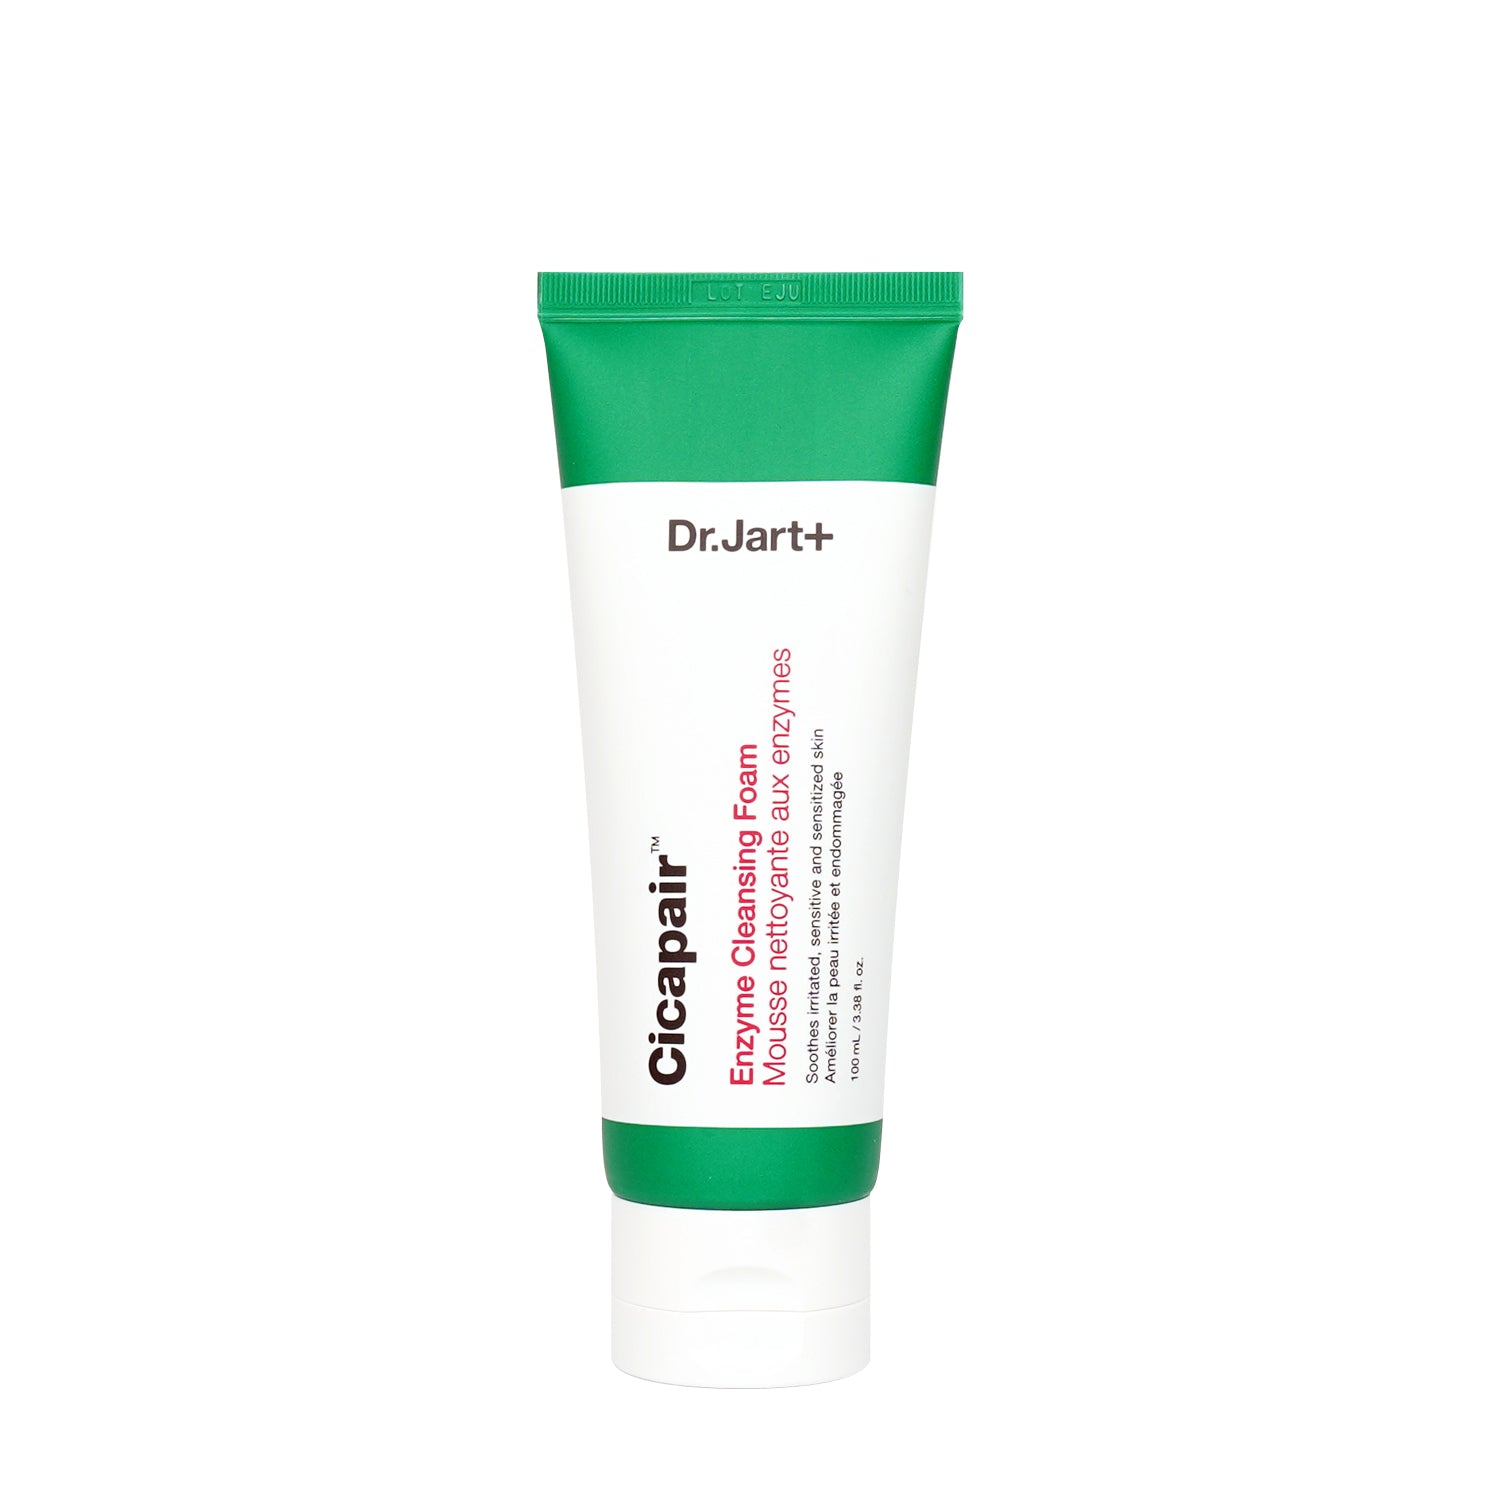 [Dr.Jart+] Cicapair Enzyme Cleansing Foam 100ml